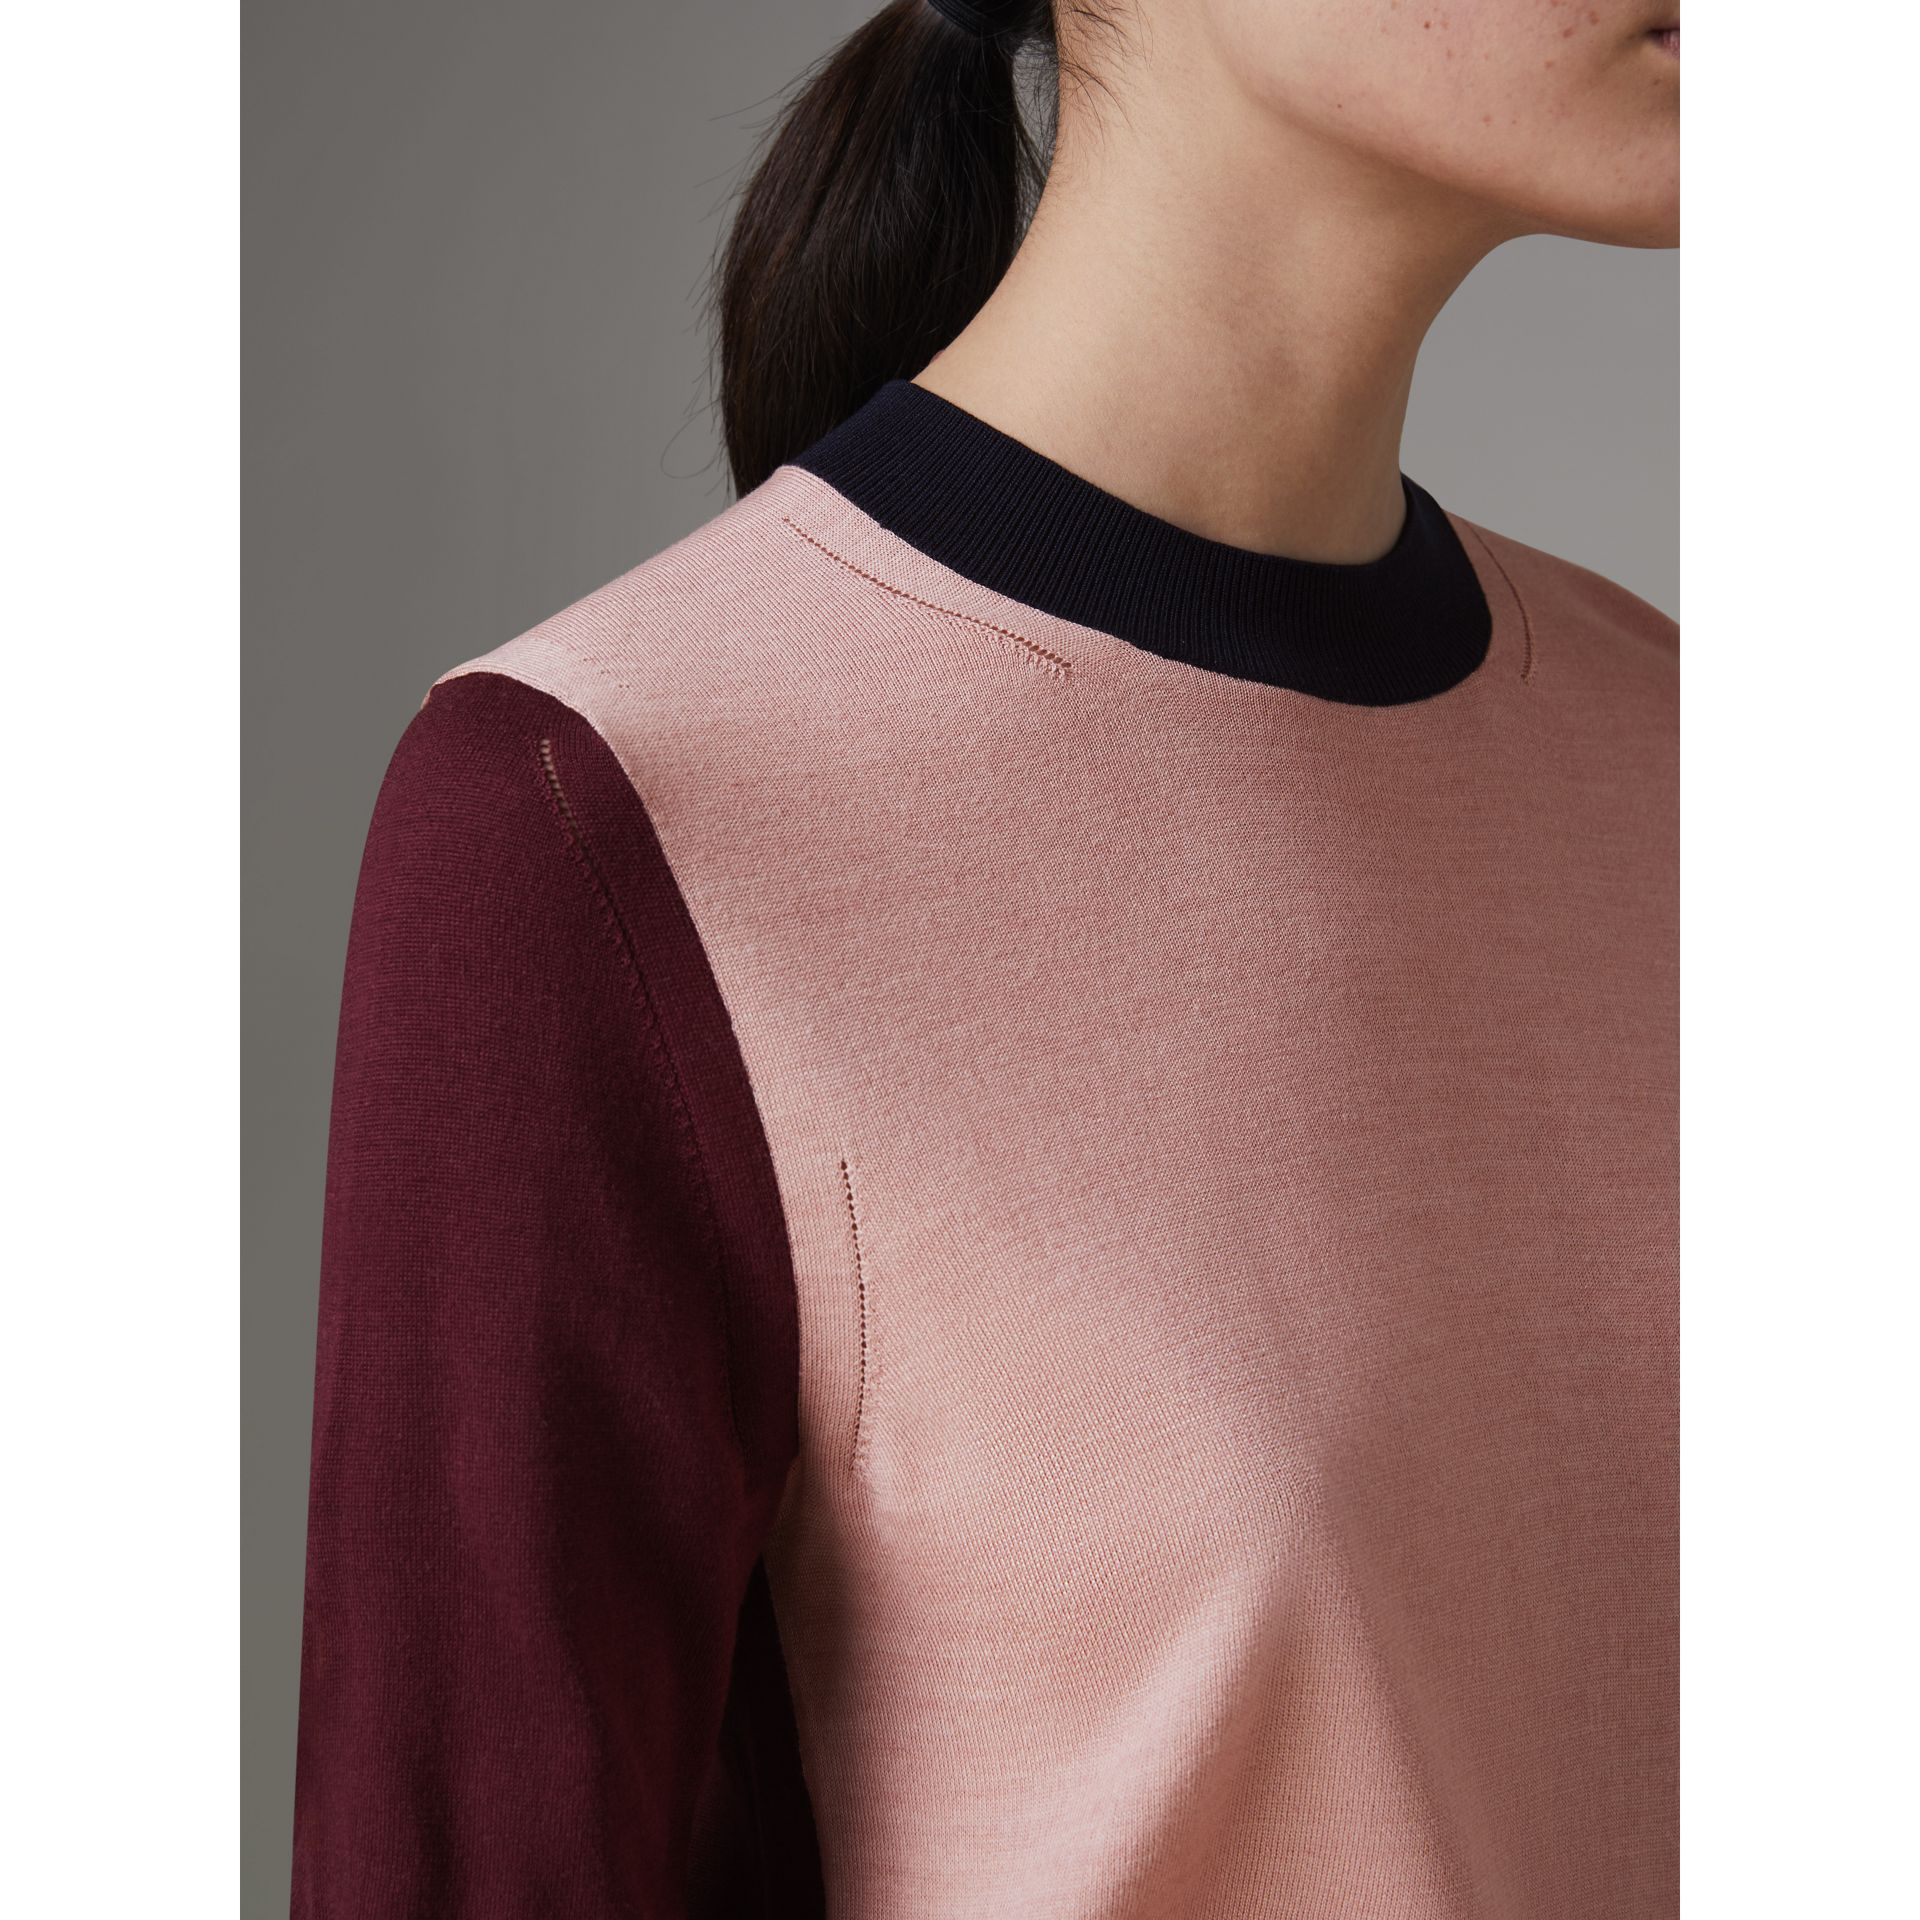 Colour Block Silk Cashmere Sweater in Pink Apricot - Women | Burberry United Kingdom - gallery image 1